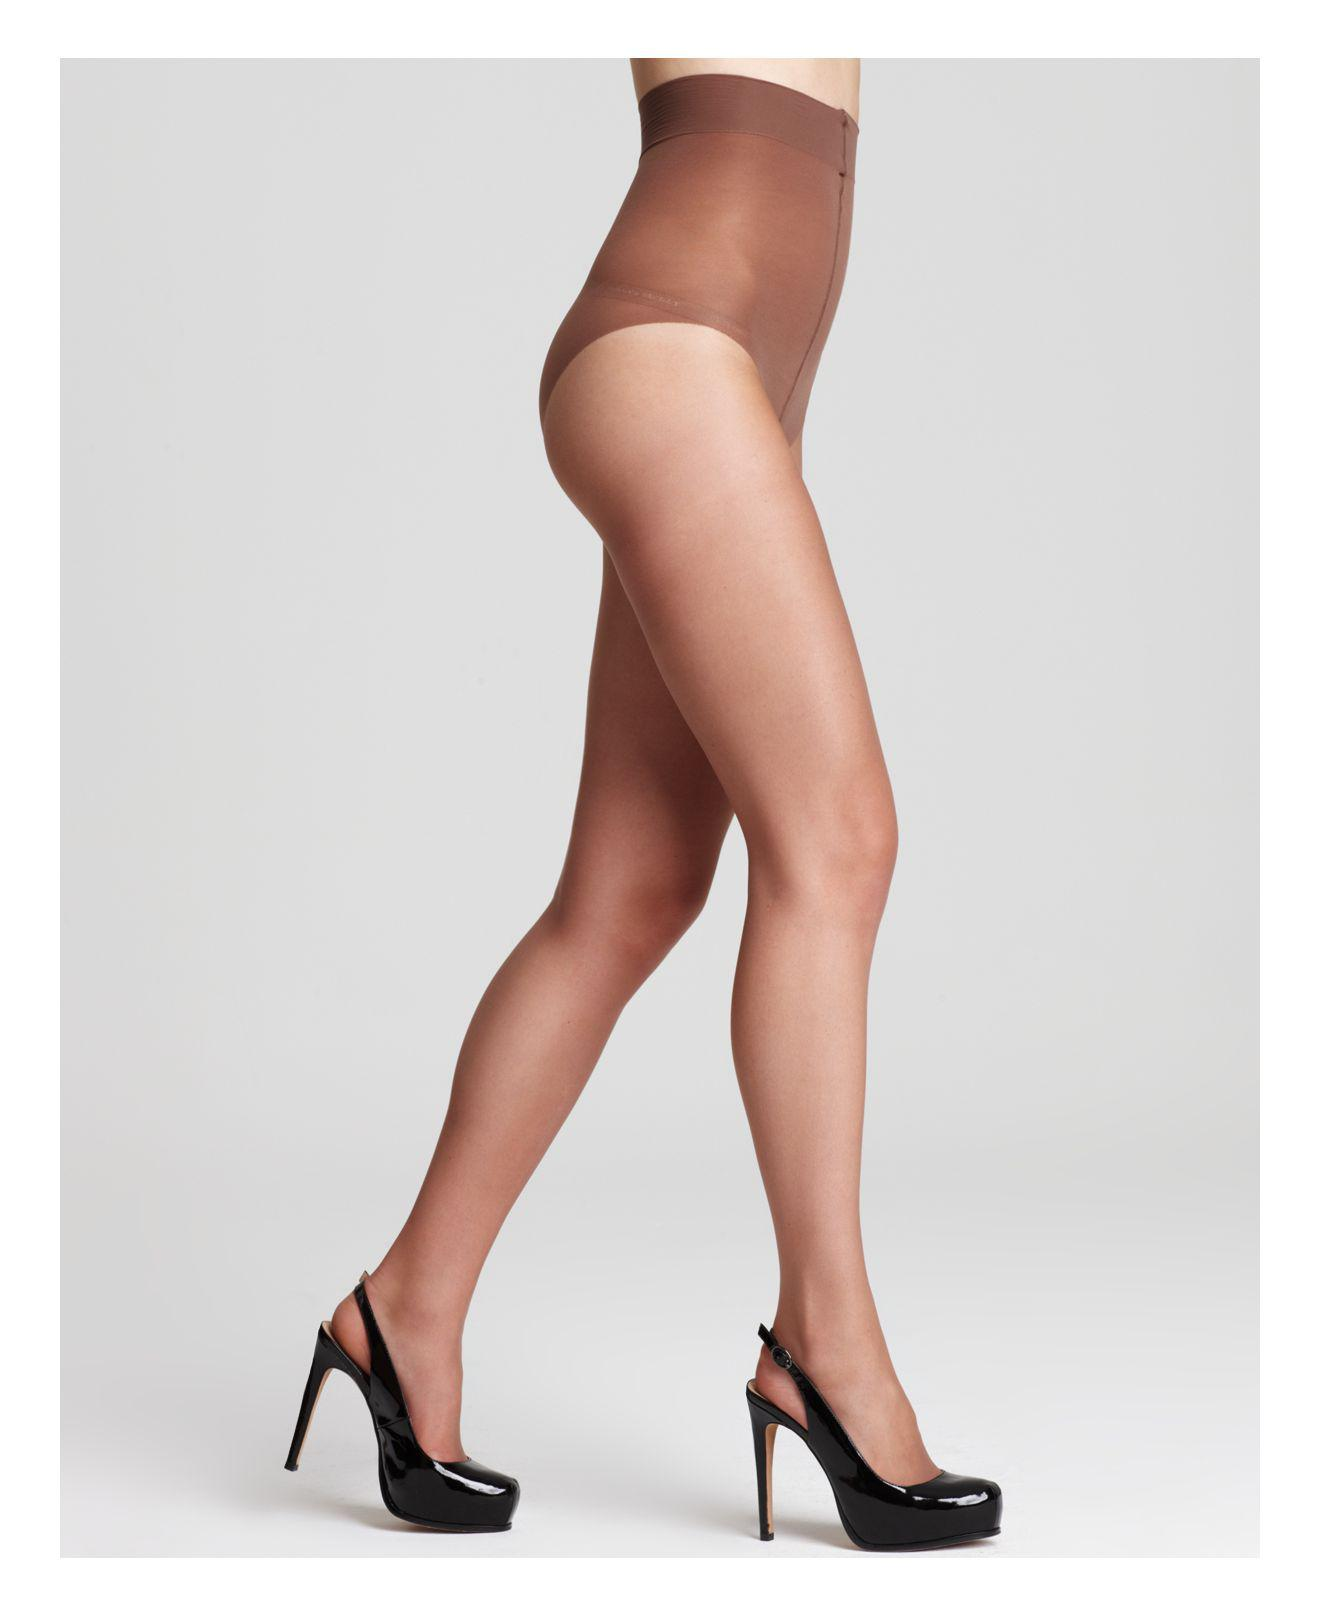 Variant possible donna karan pantyhose